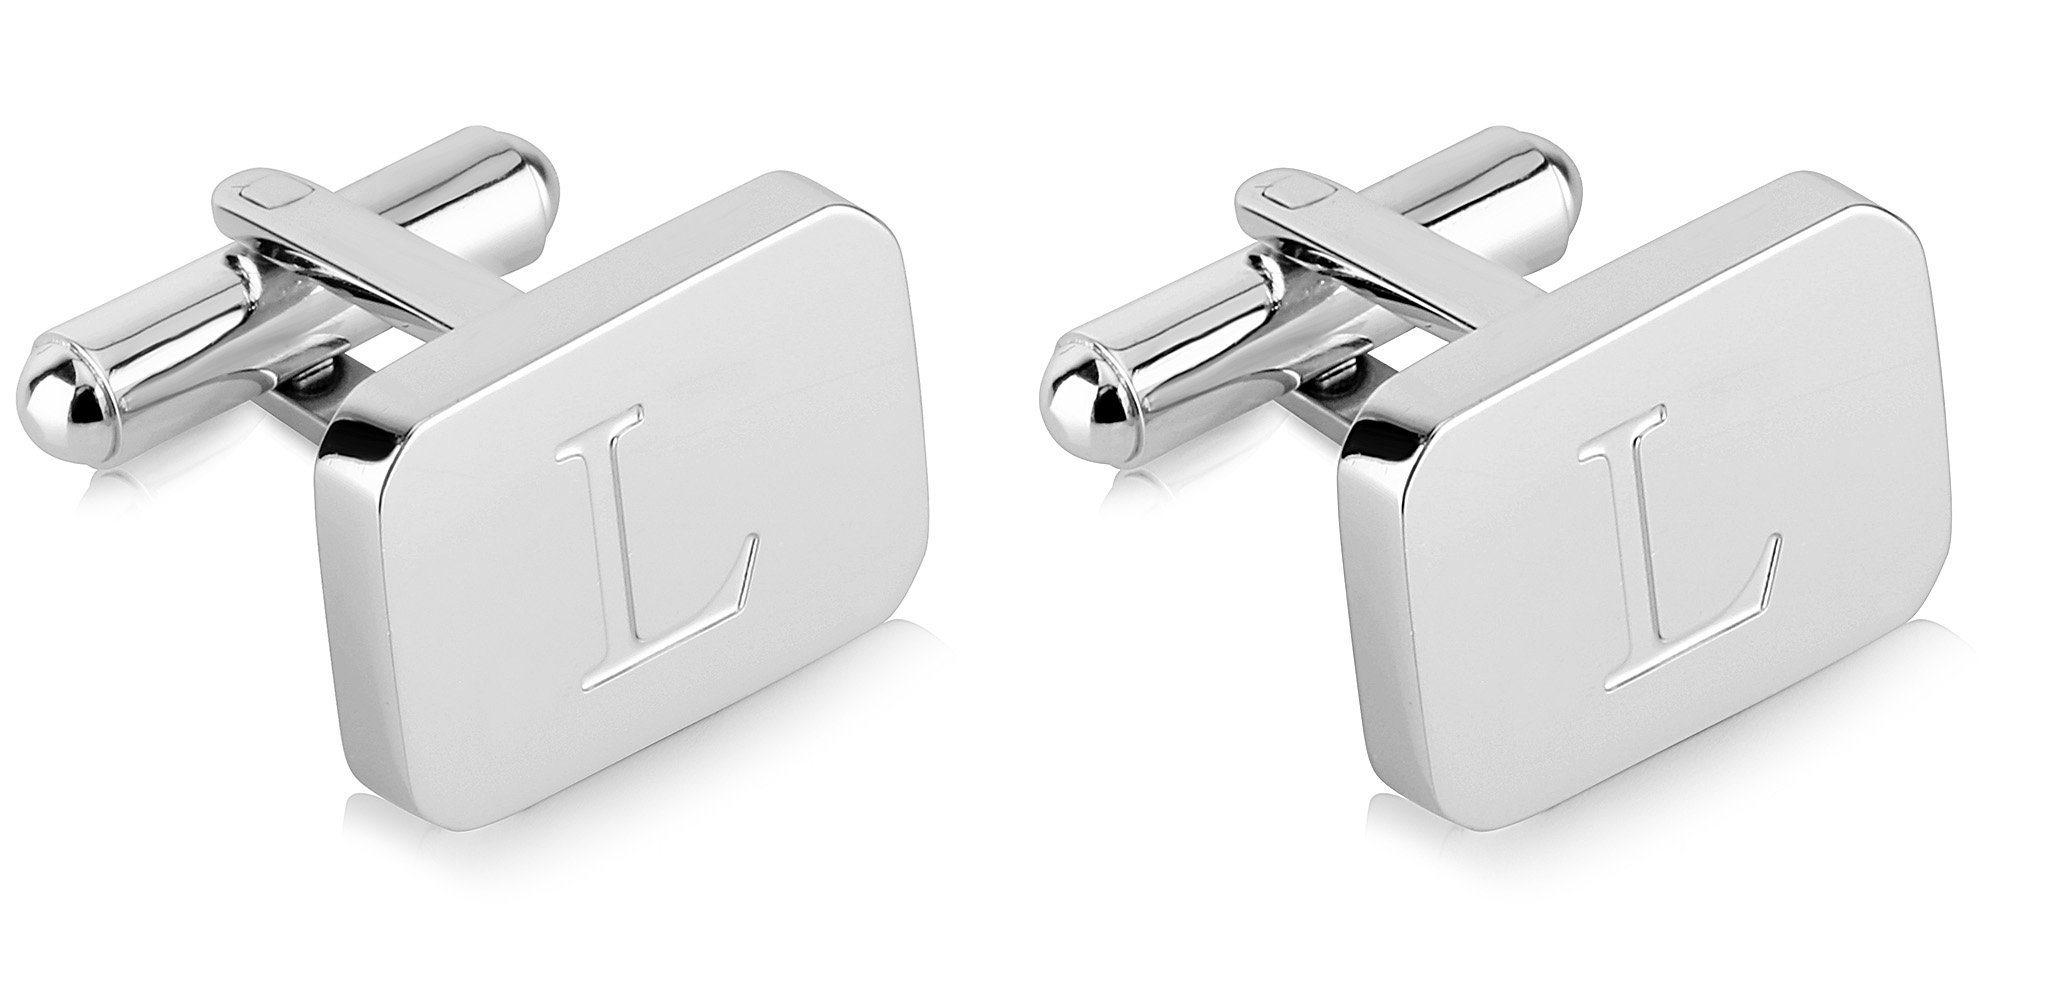 White-Gold Plated Monogram Initial Engraved Stainless Steel Man's Cufflinks With Gift Box -Personalized Alphabet Letter's By Lux & Pier (L- White Gold)